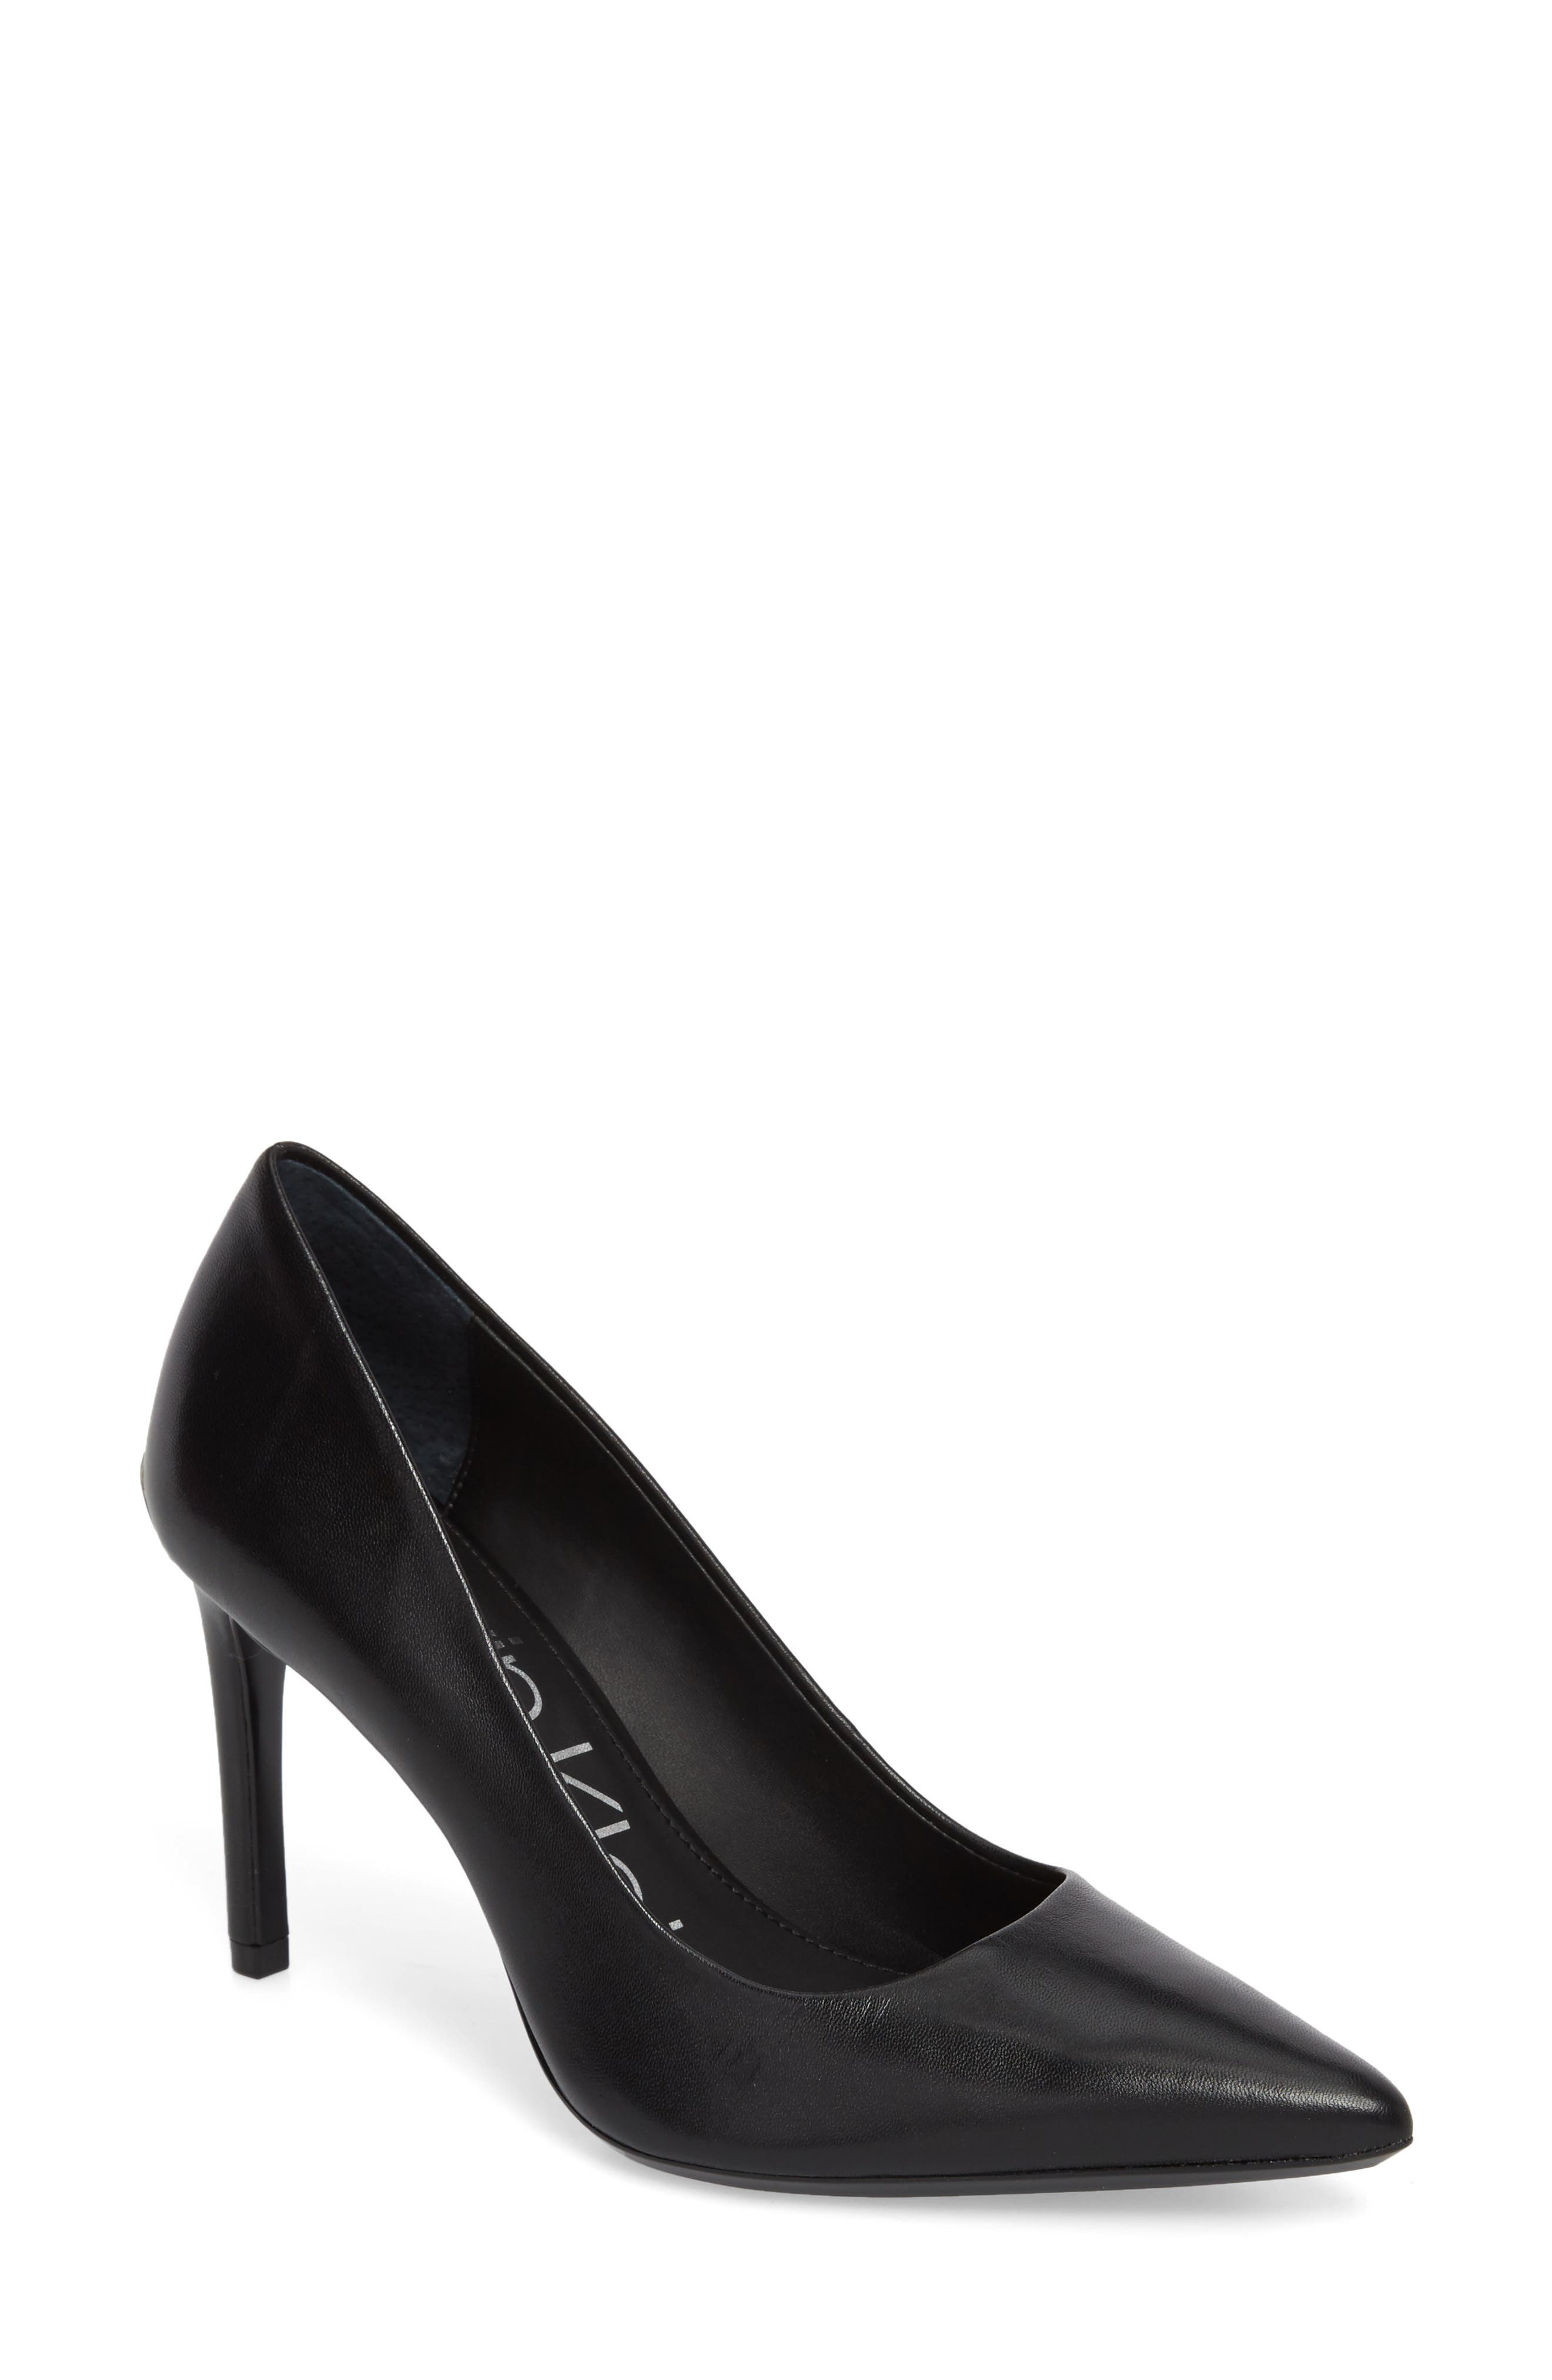 Ronna Pointy Toe Pump,                             Main thumbnail 1, color,                             BLACK LEATHER